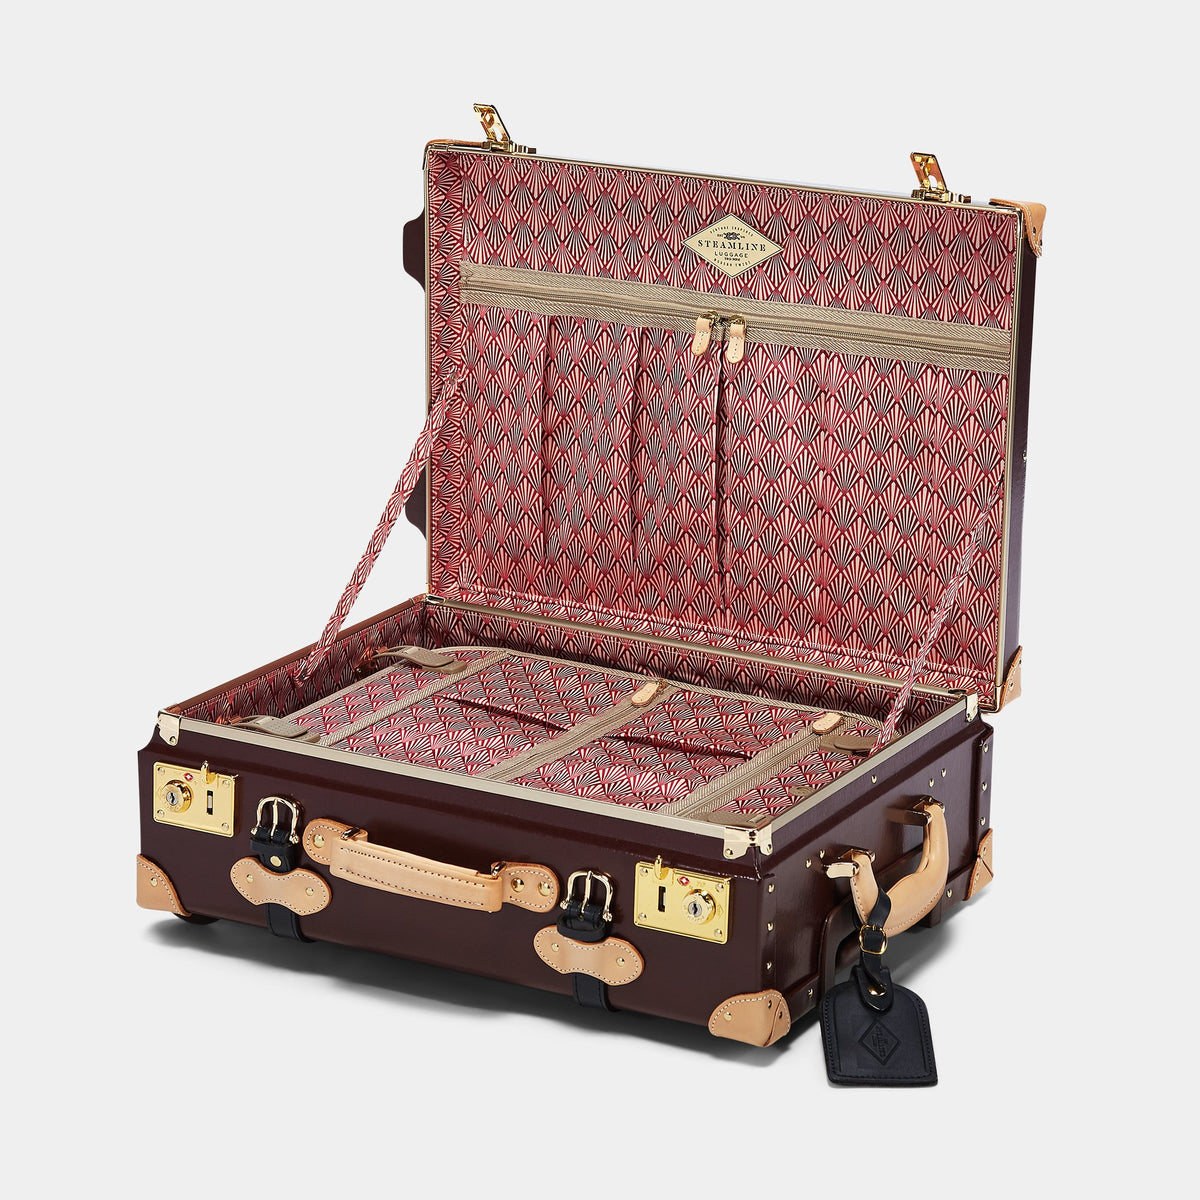 The Architect Carryon in Burgundy - Vintage Style Leather Case - Interior Front